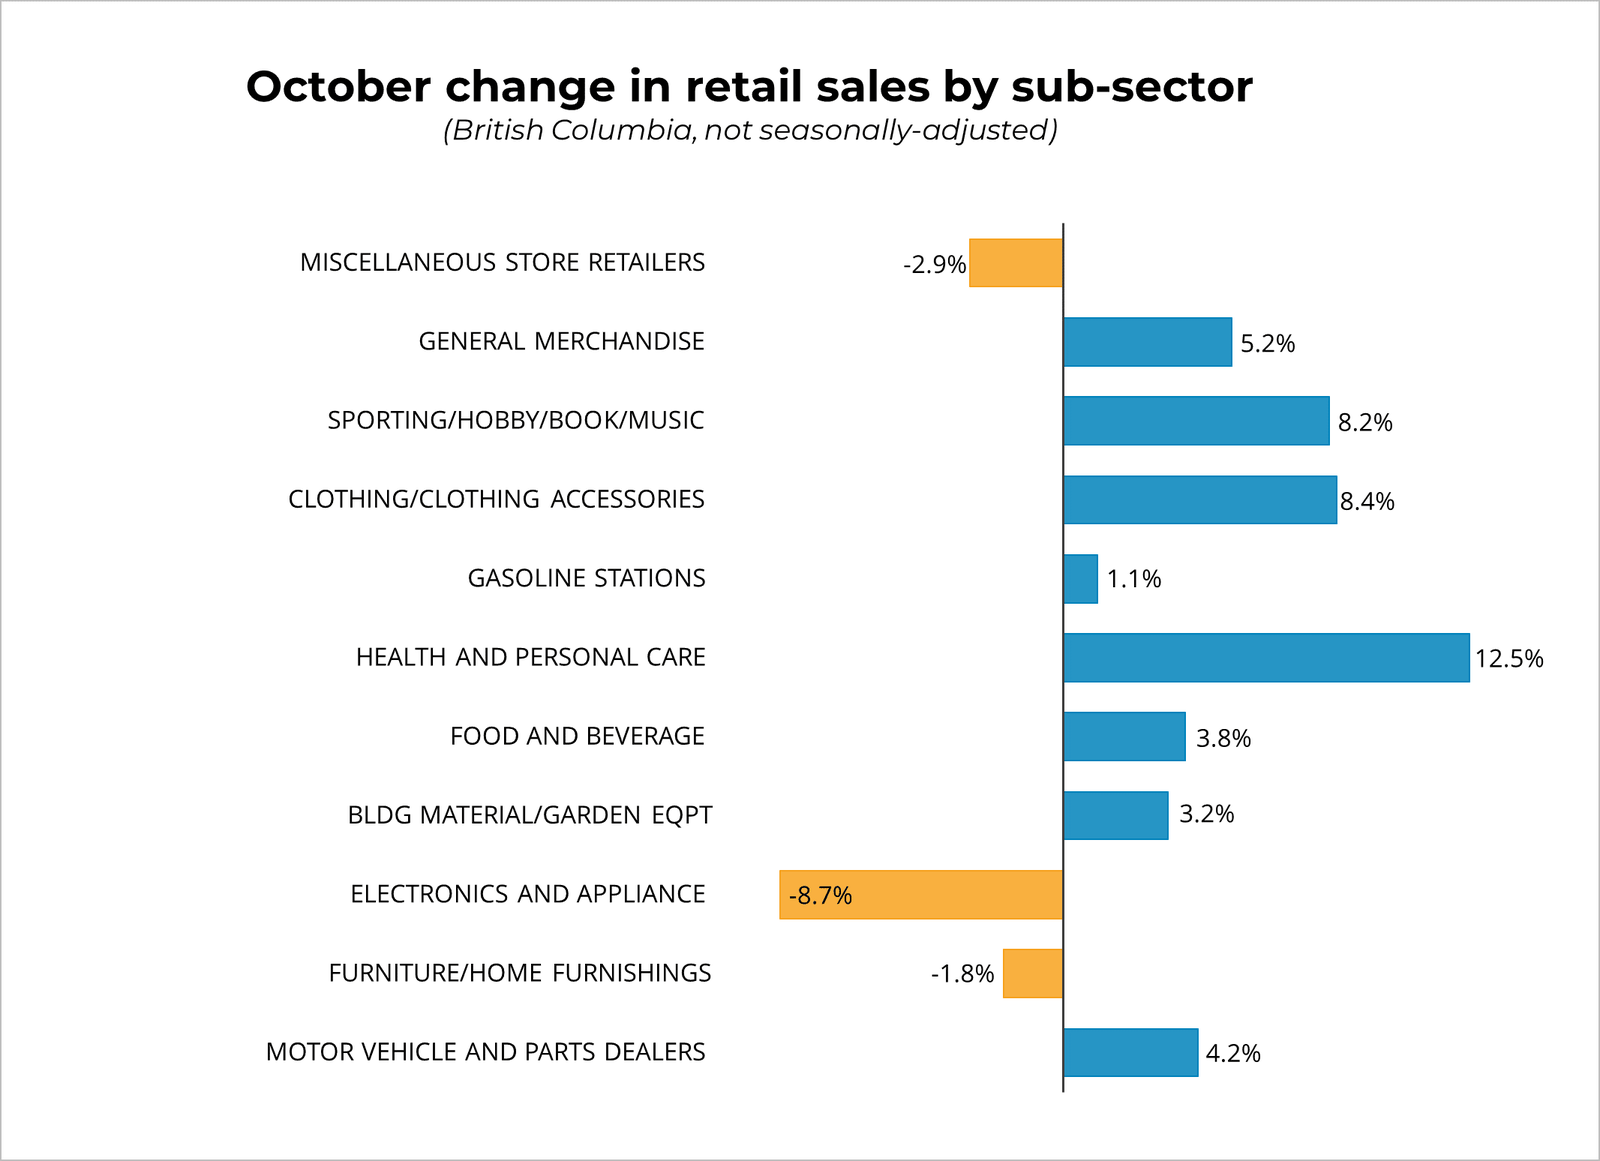 October Retail Sales by Sector